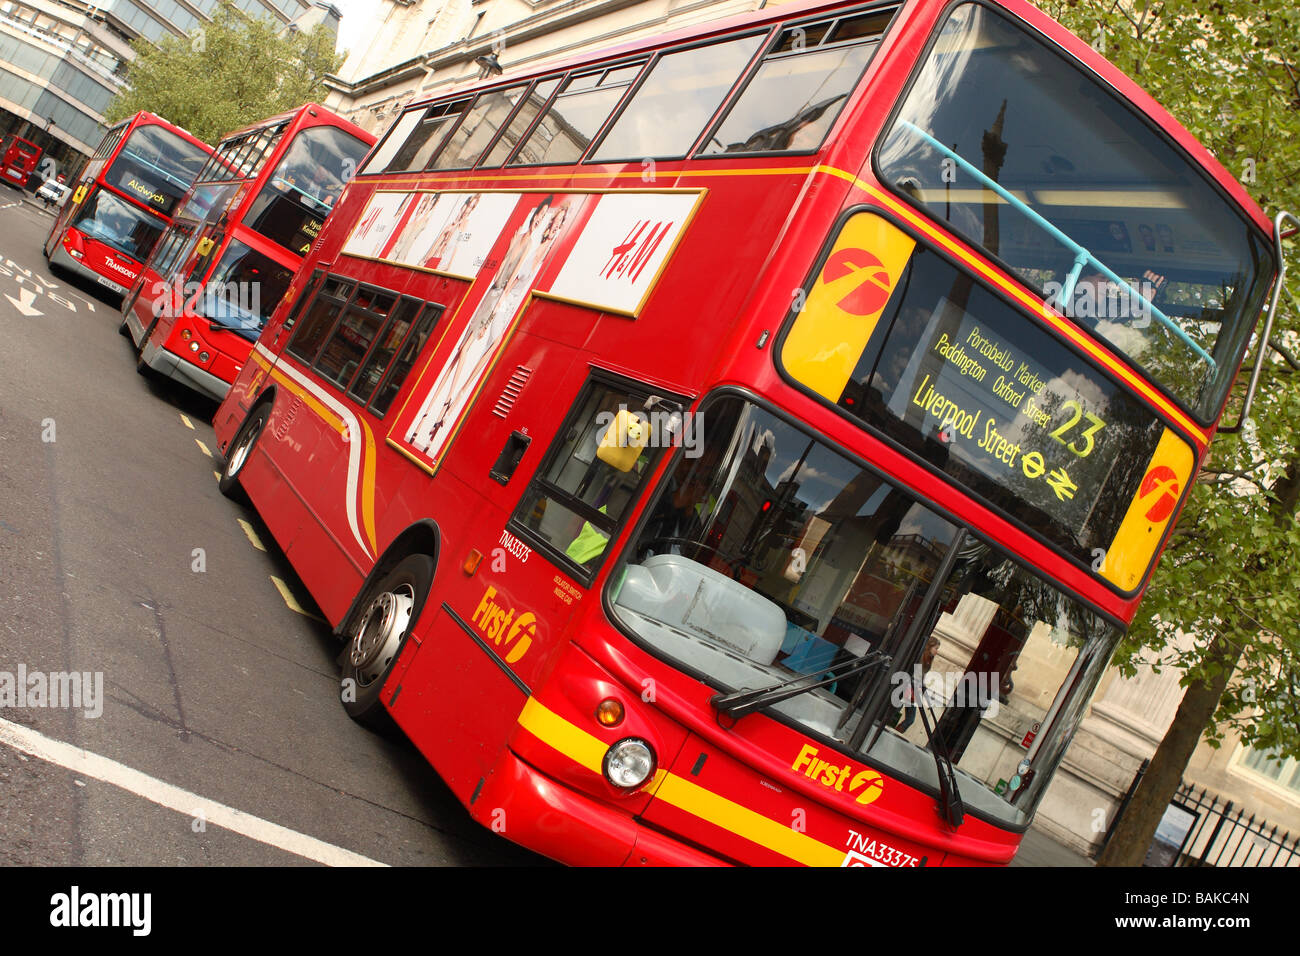 London doubledecker bus operated by the First Group route 23 to Liverpool Street - Stock Image